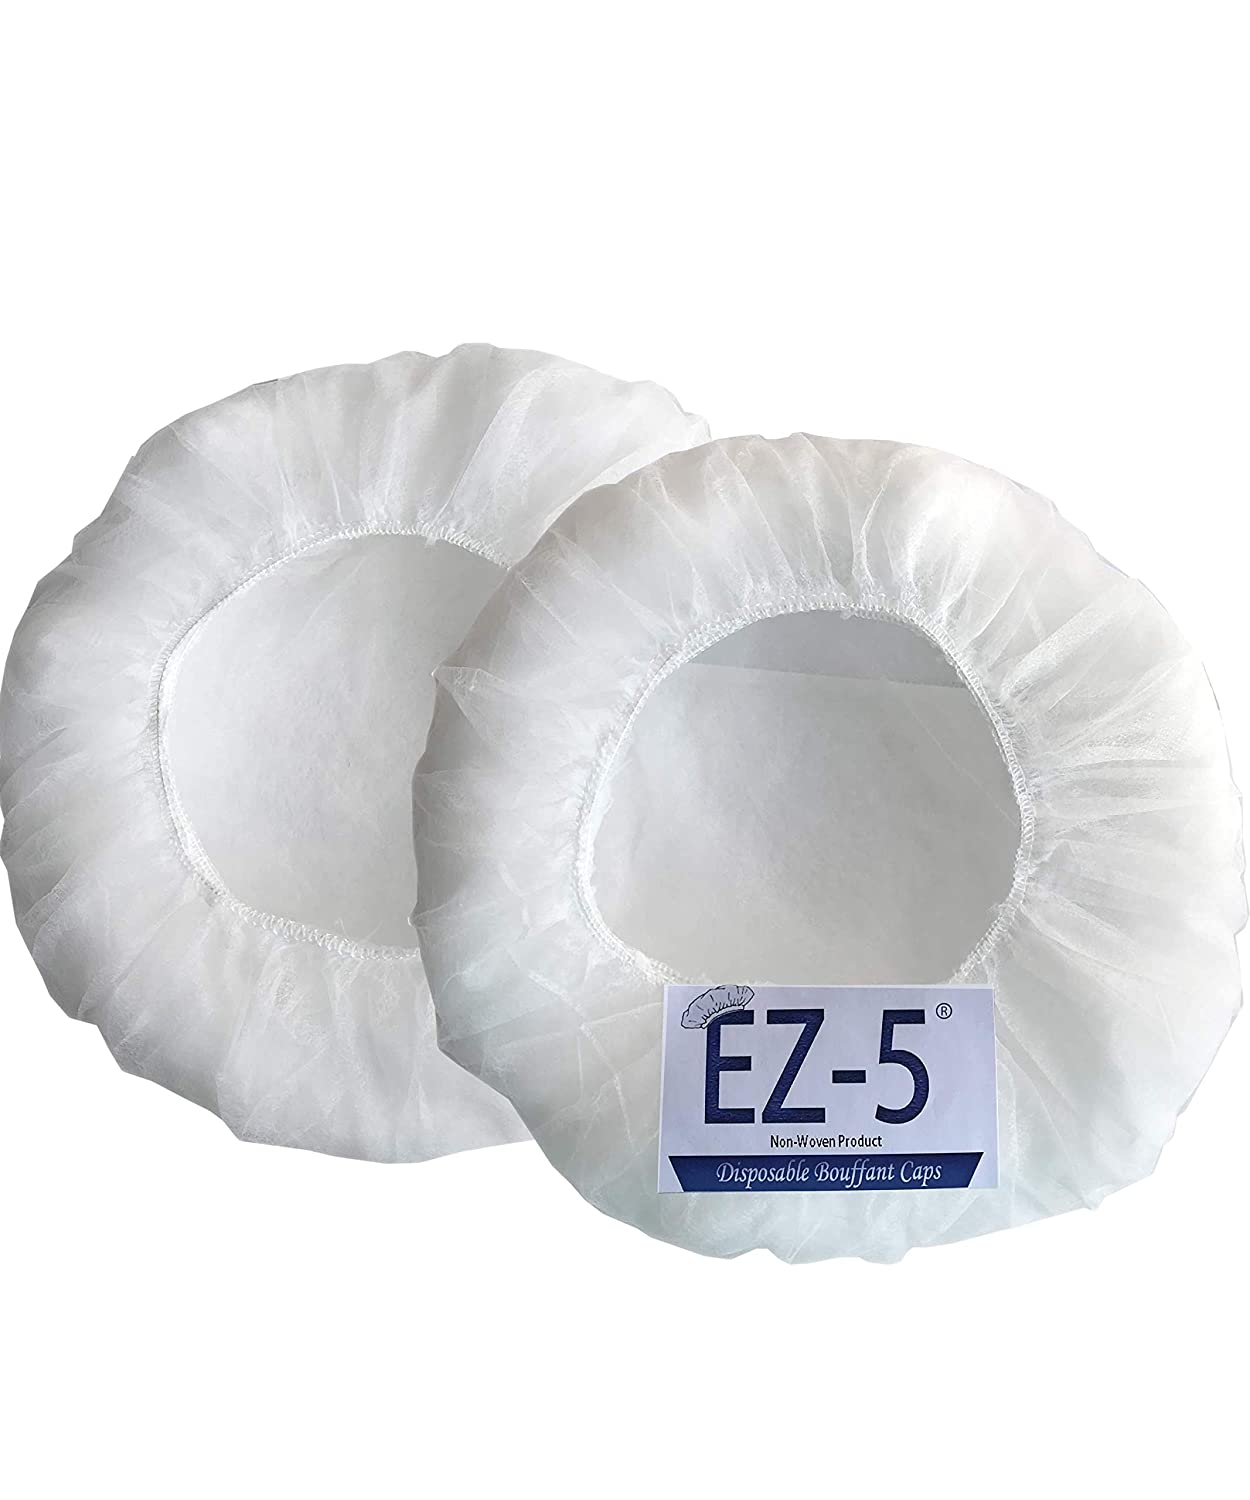 100 pcs- EZ-5 Disposable Bouffant Caps, Spun-Bounded Poly, Hair Head Cover Net, Non-Woven, Medical, Labs, Nurse, Tattoo, Food Service, Hospital-(21 INCH, White)